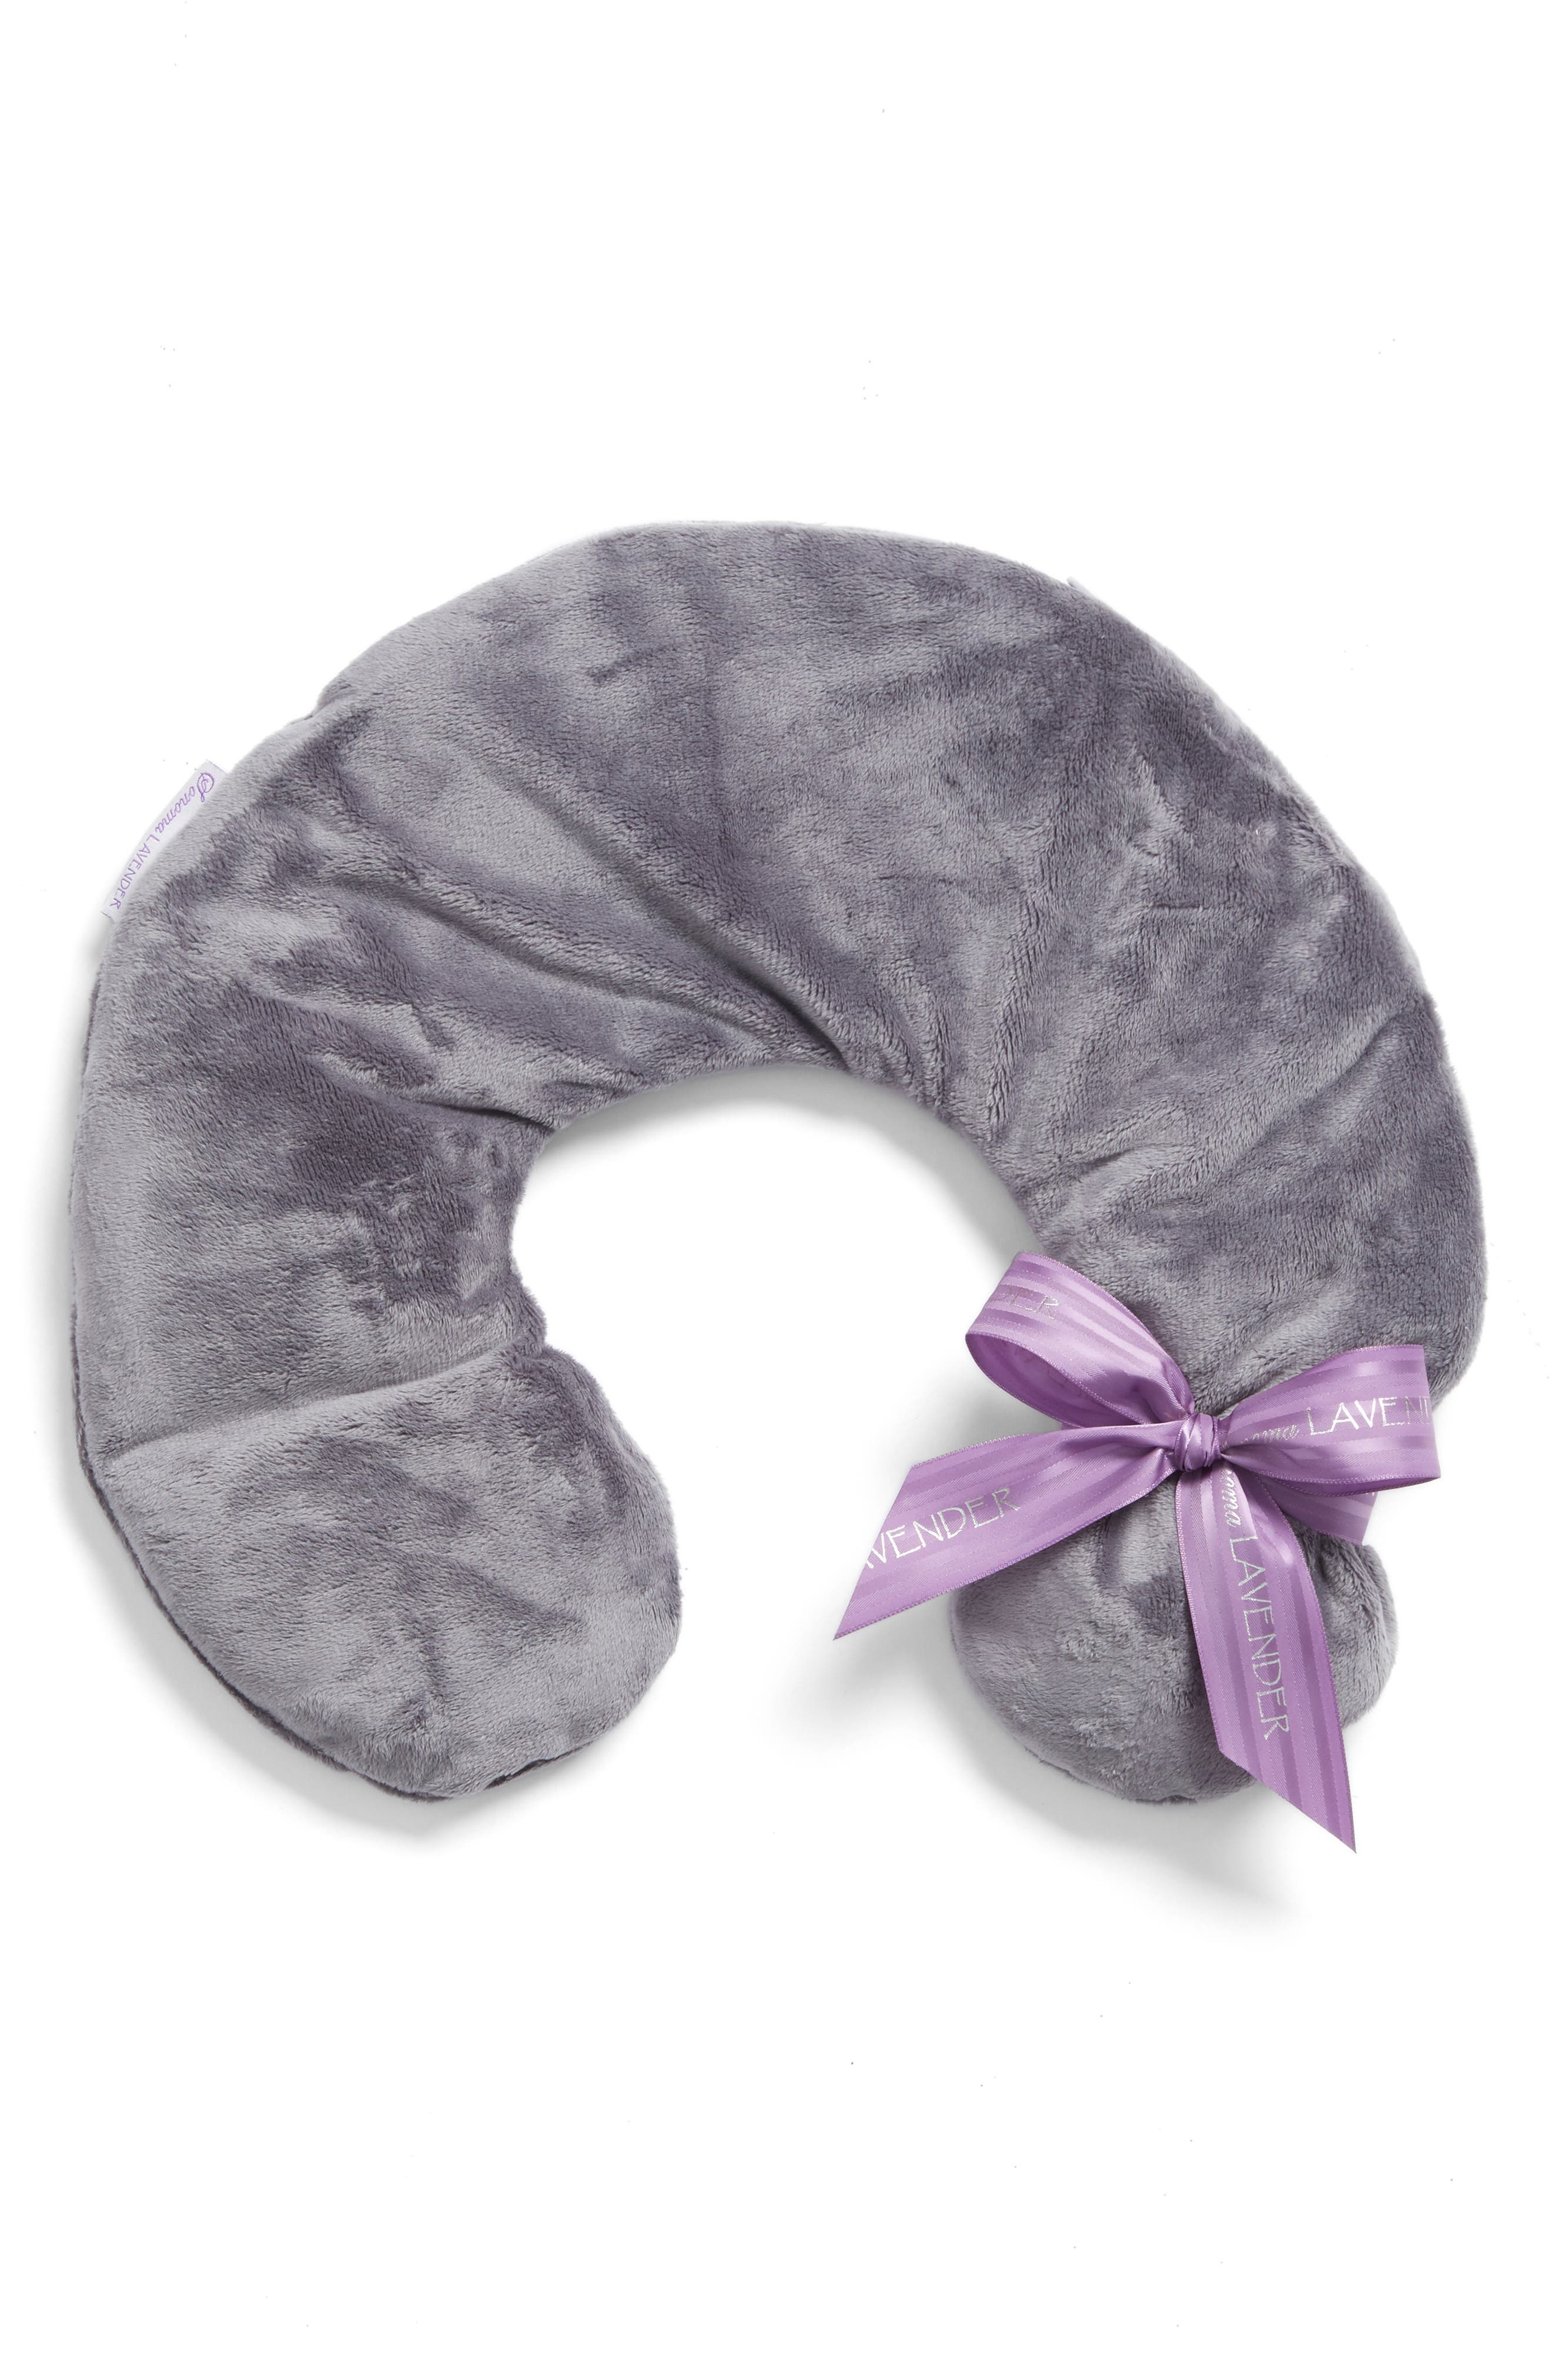 Sonoma Lavender Solid Charcoal Grey Neck Pillow (Nordstrom Exclusive) ($44 Value)